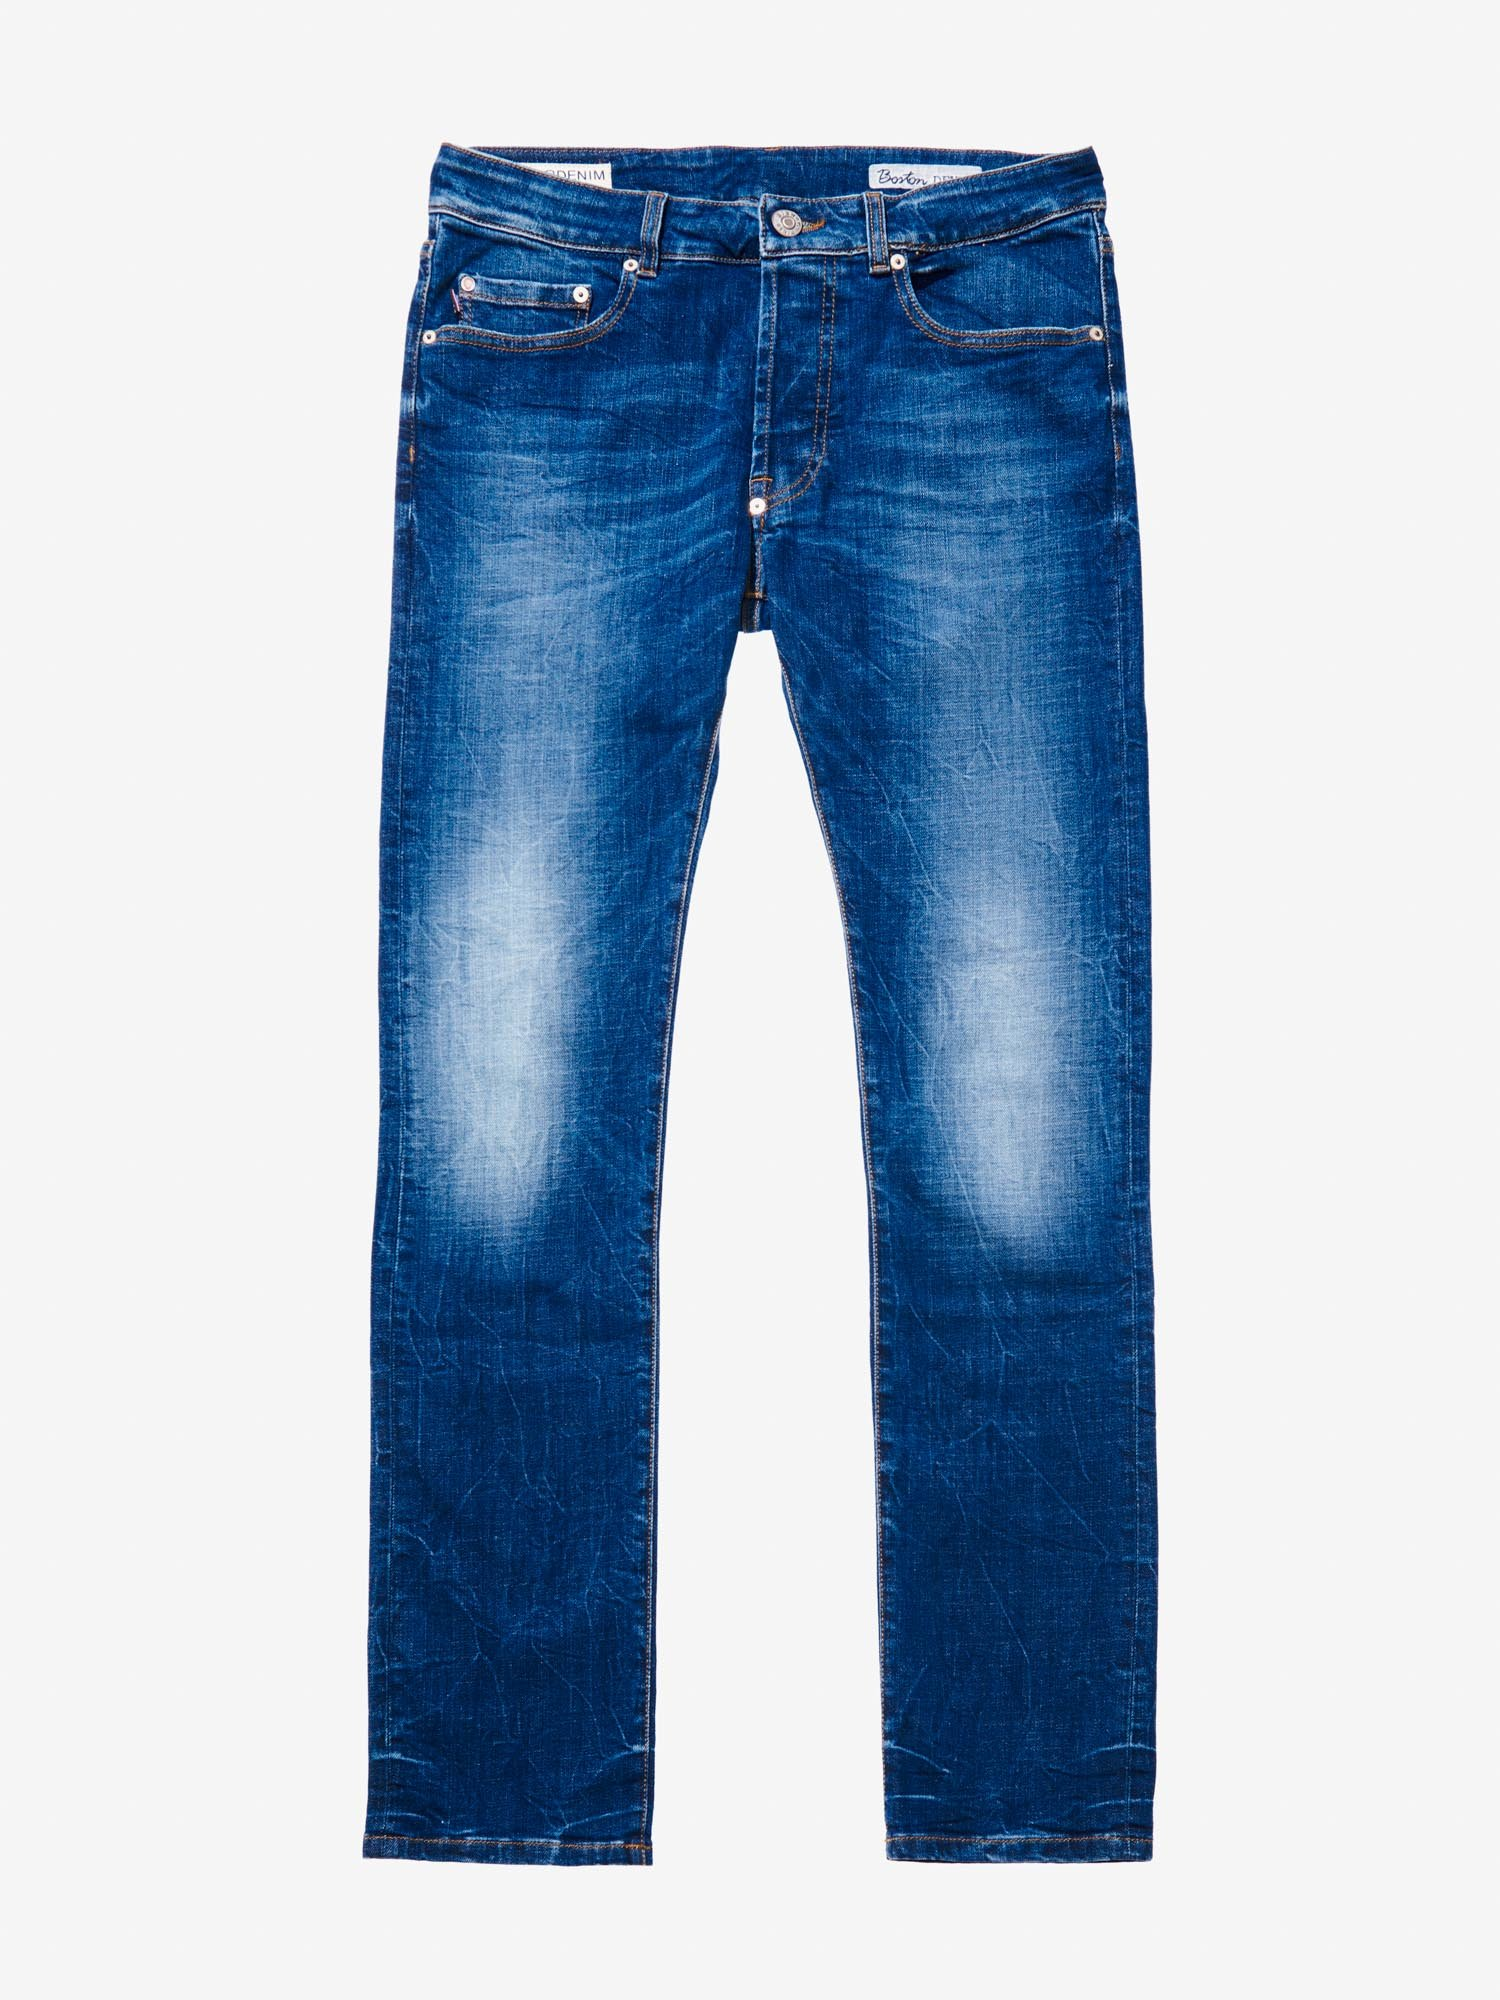 DENIM BOOT CUT STONE WASHED - Blauer